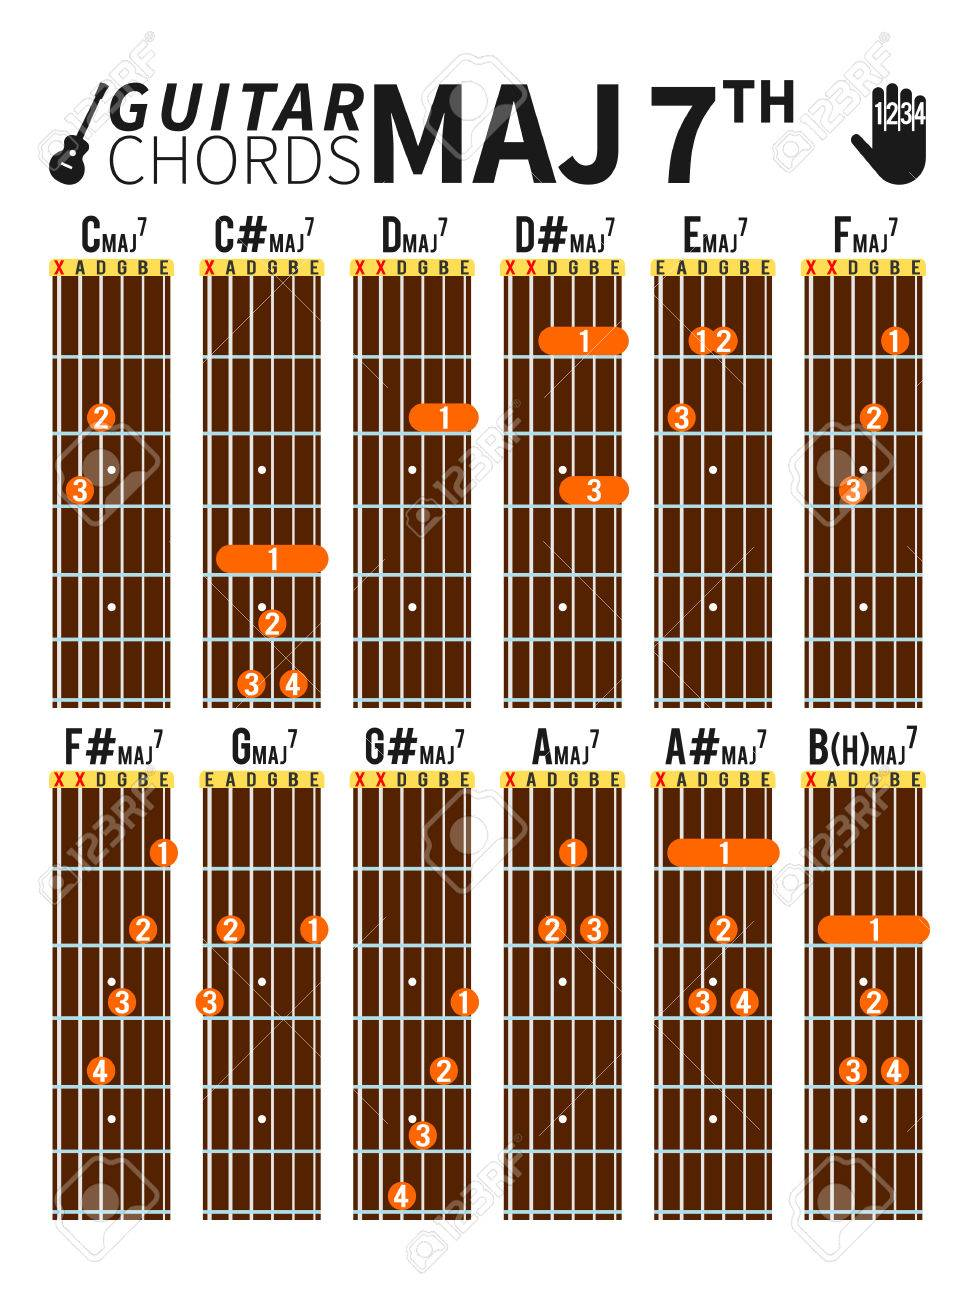 Colorful Major Seventh Chords Chart For Guitar With Fingers Position